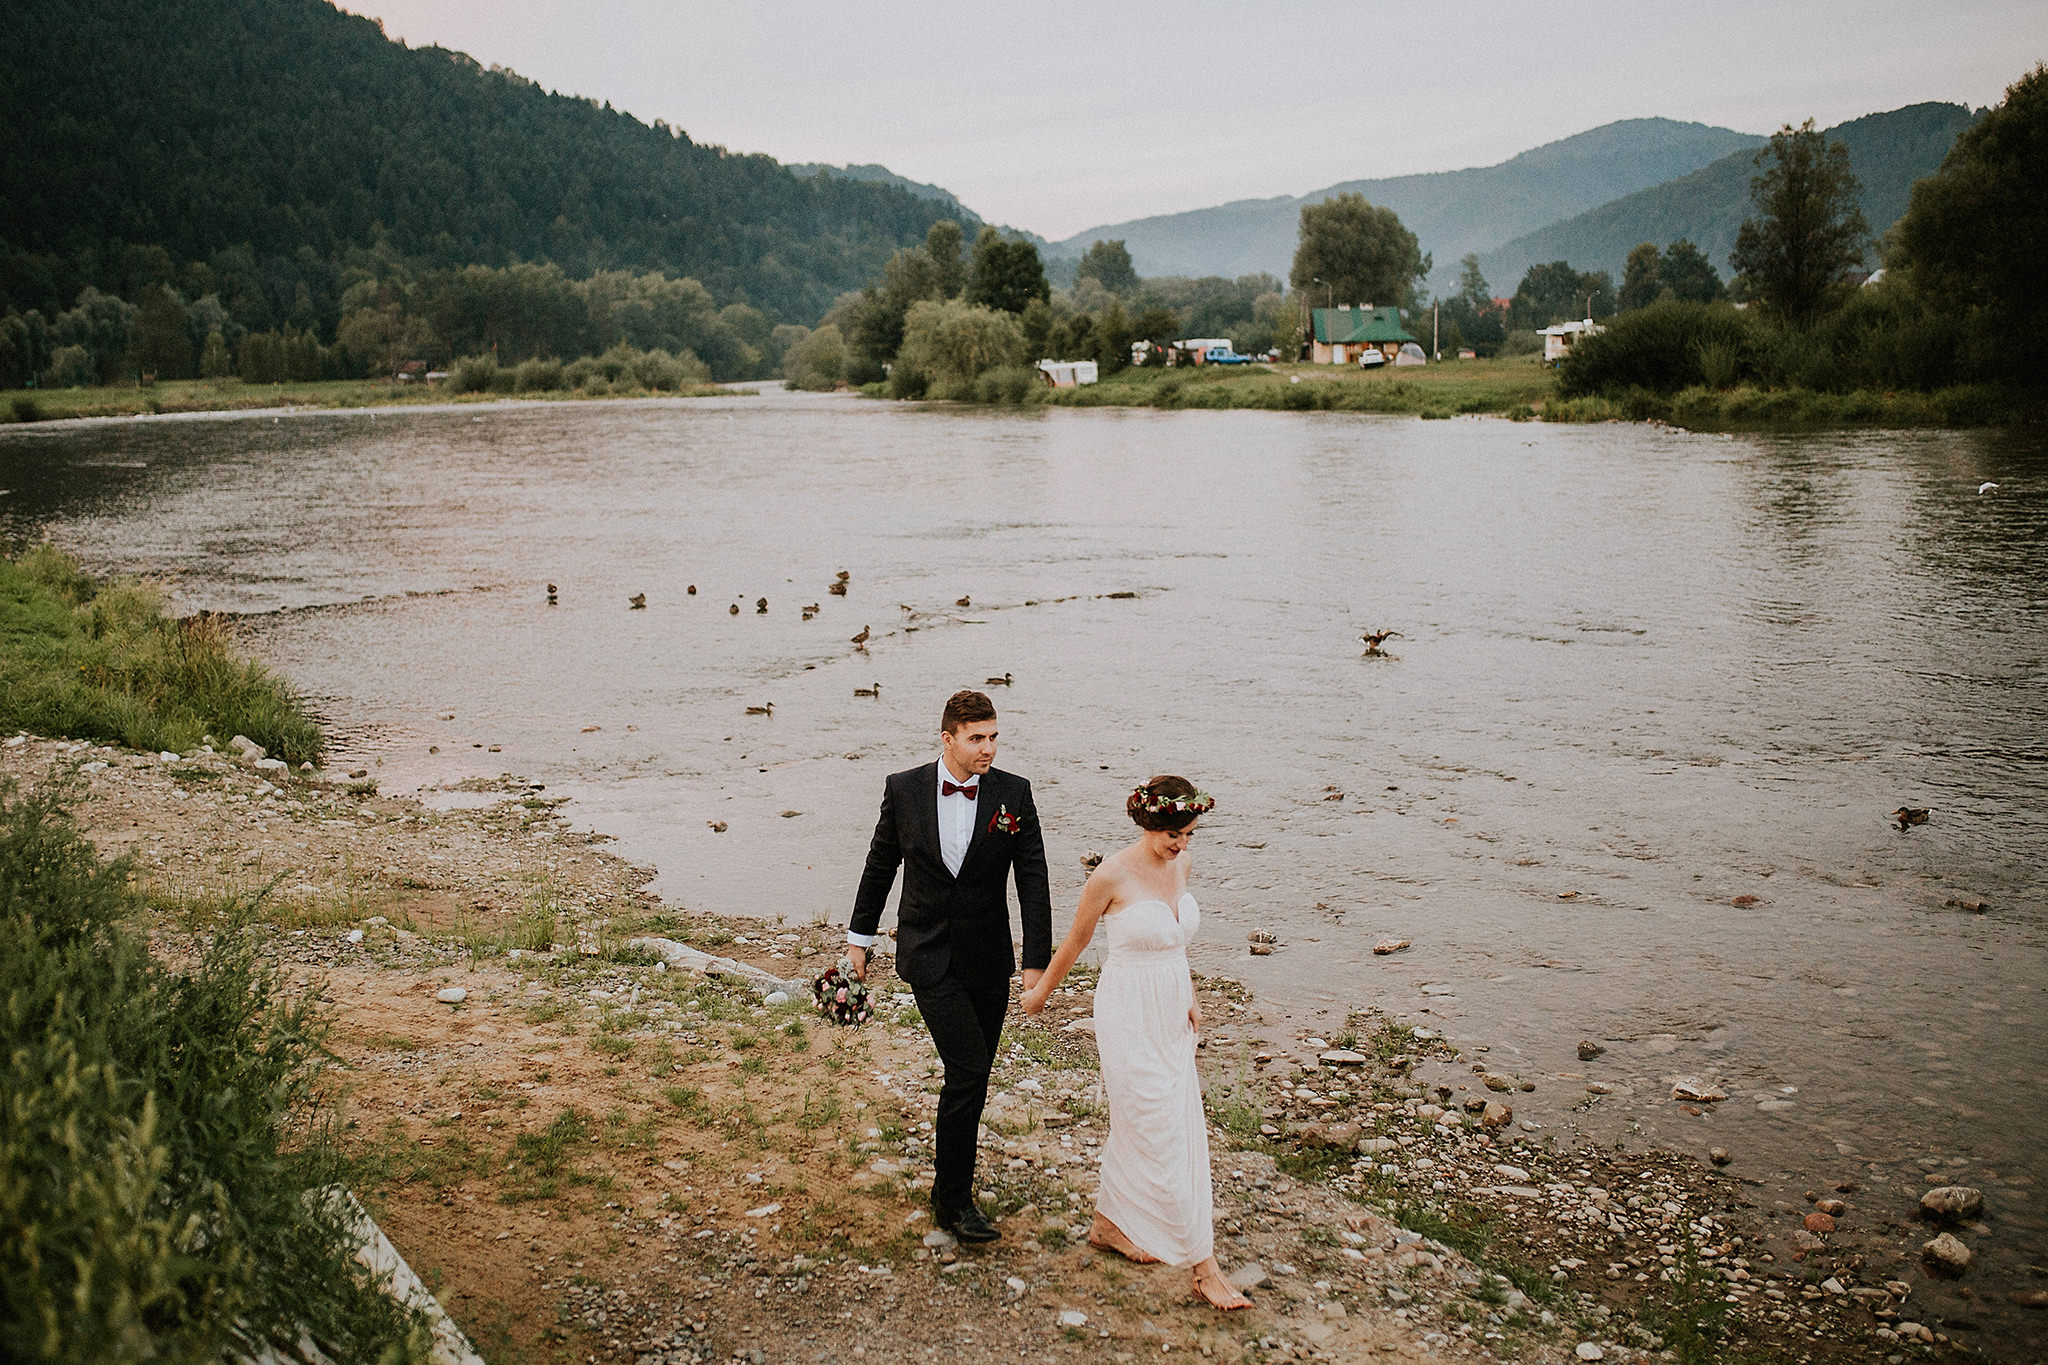 destination wedding in the mountains Poland